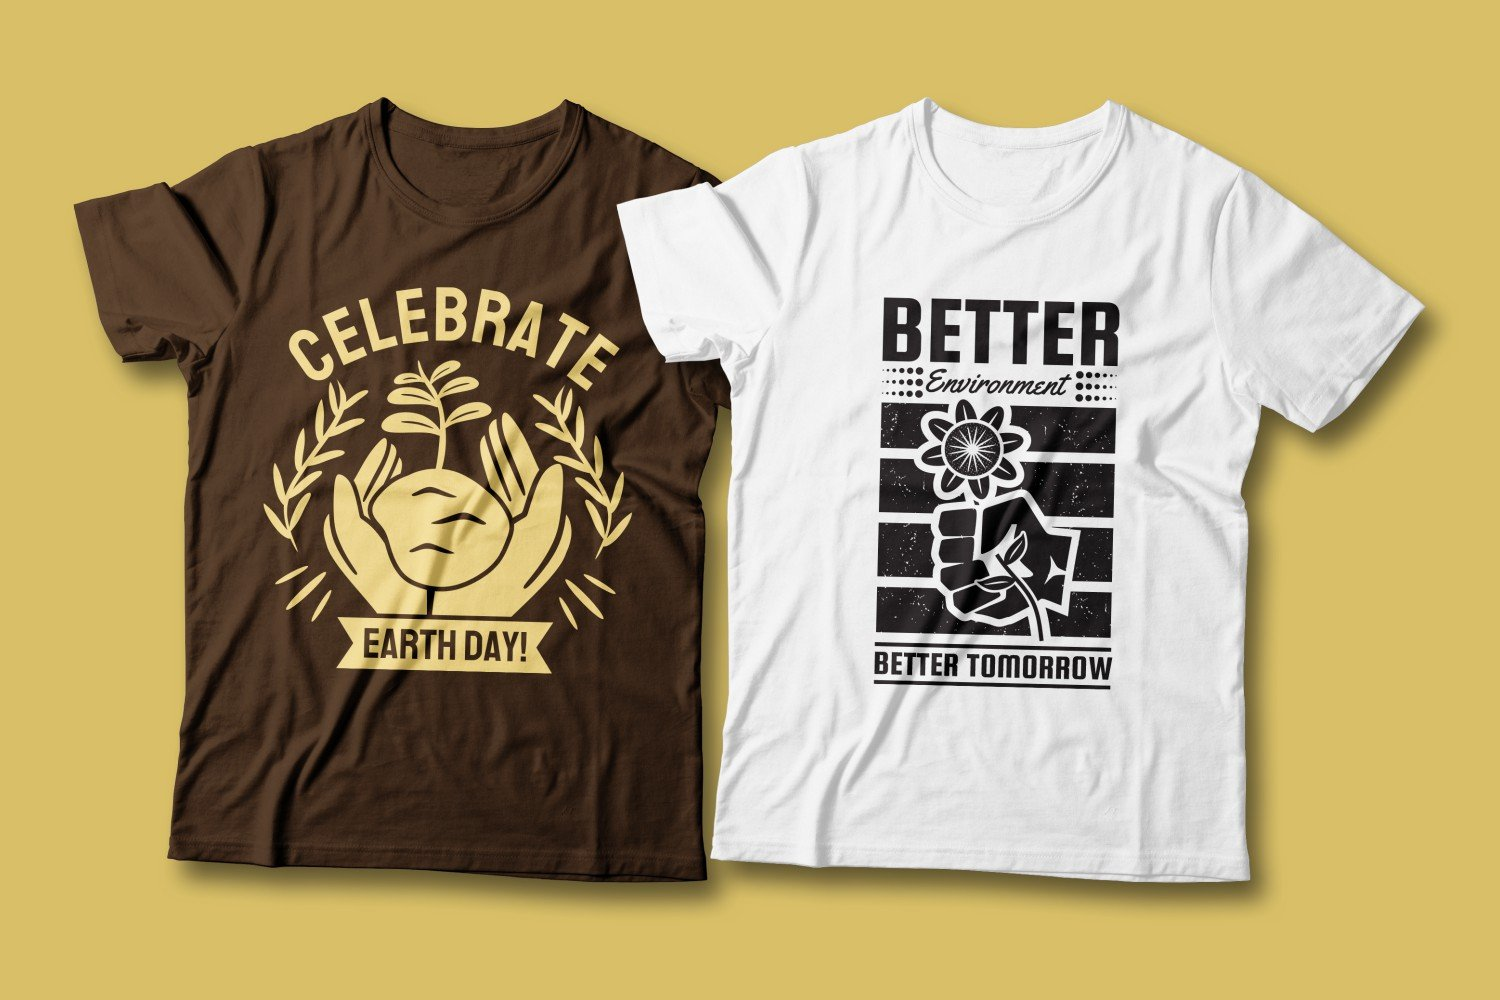 Two T-shirts - brown and white. Both are about the future and nature conservation.